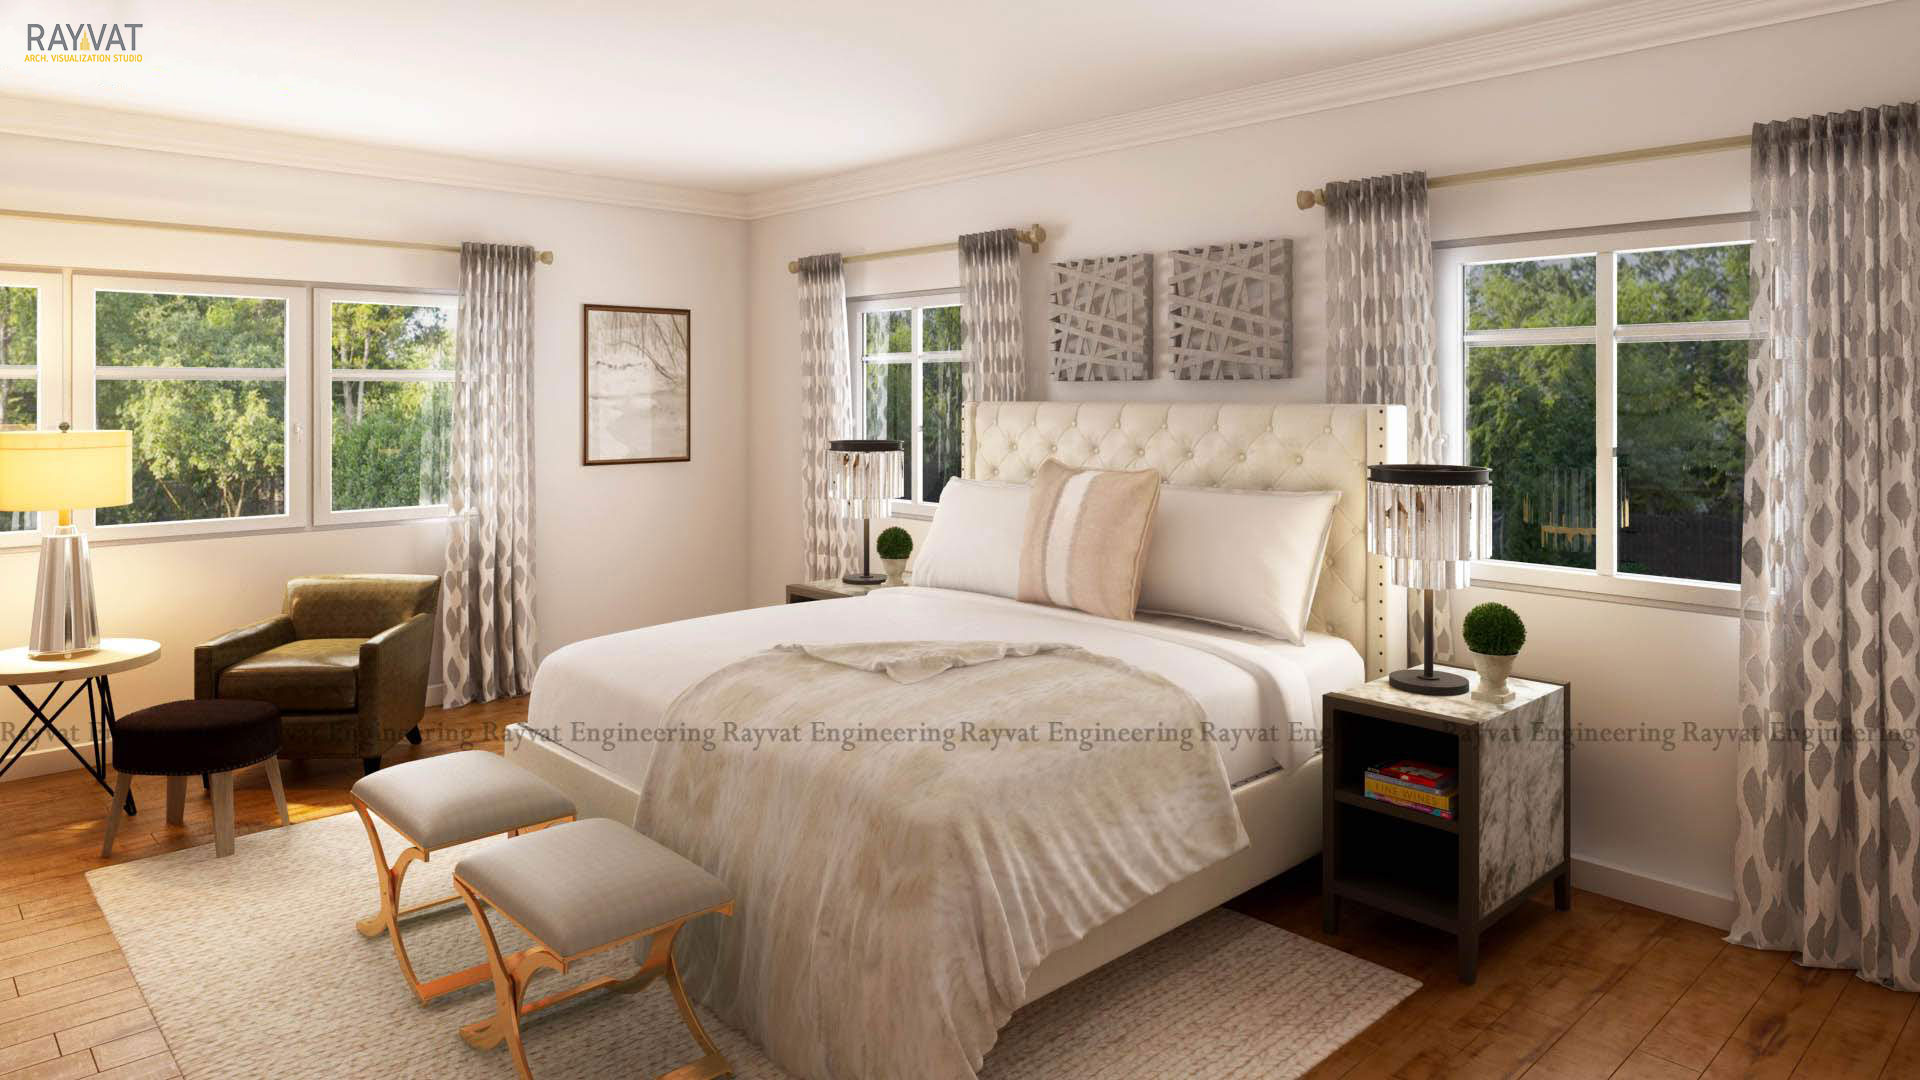 3D Rendering Services Raleigh, North Carolina